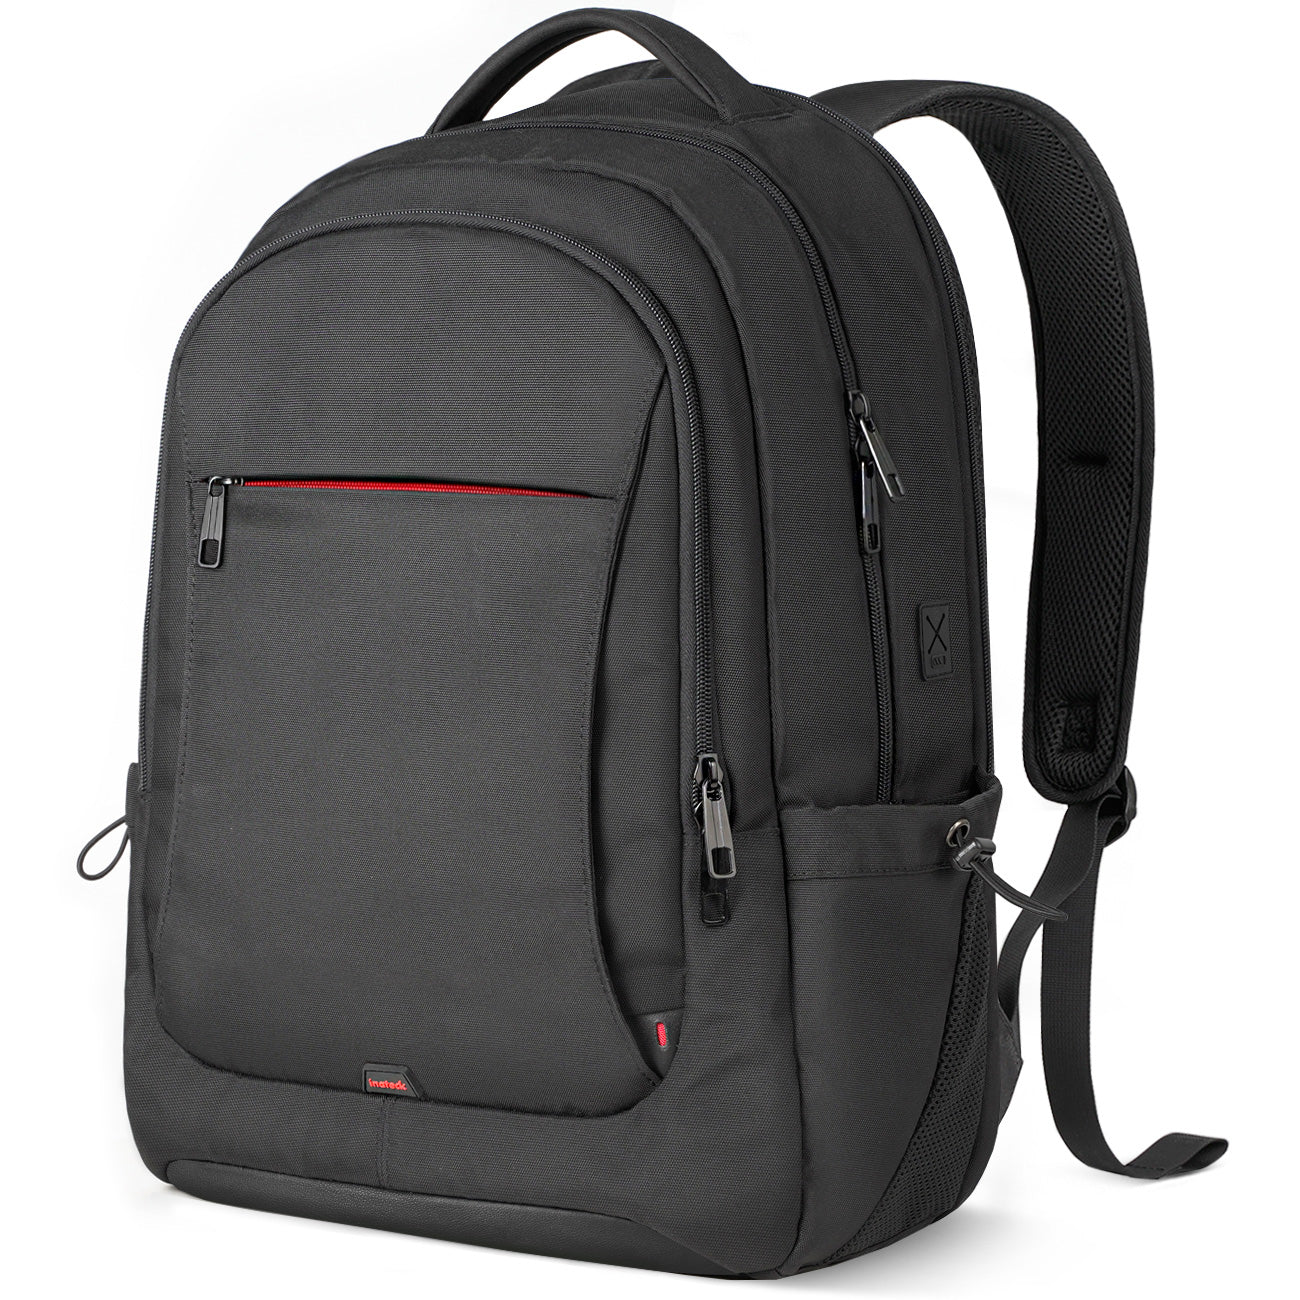 Inateck 33L 15.6 Inch School Backpack Business Travel Backpack BP02003, Black